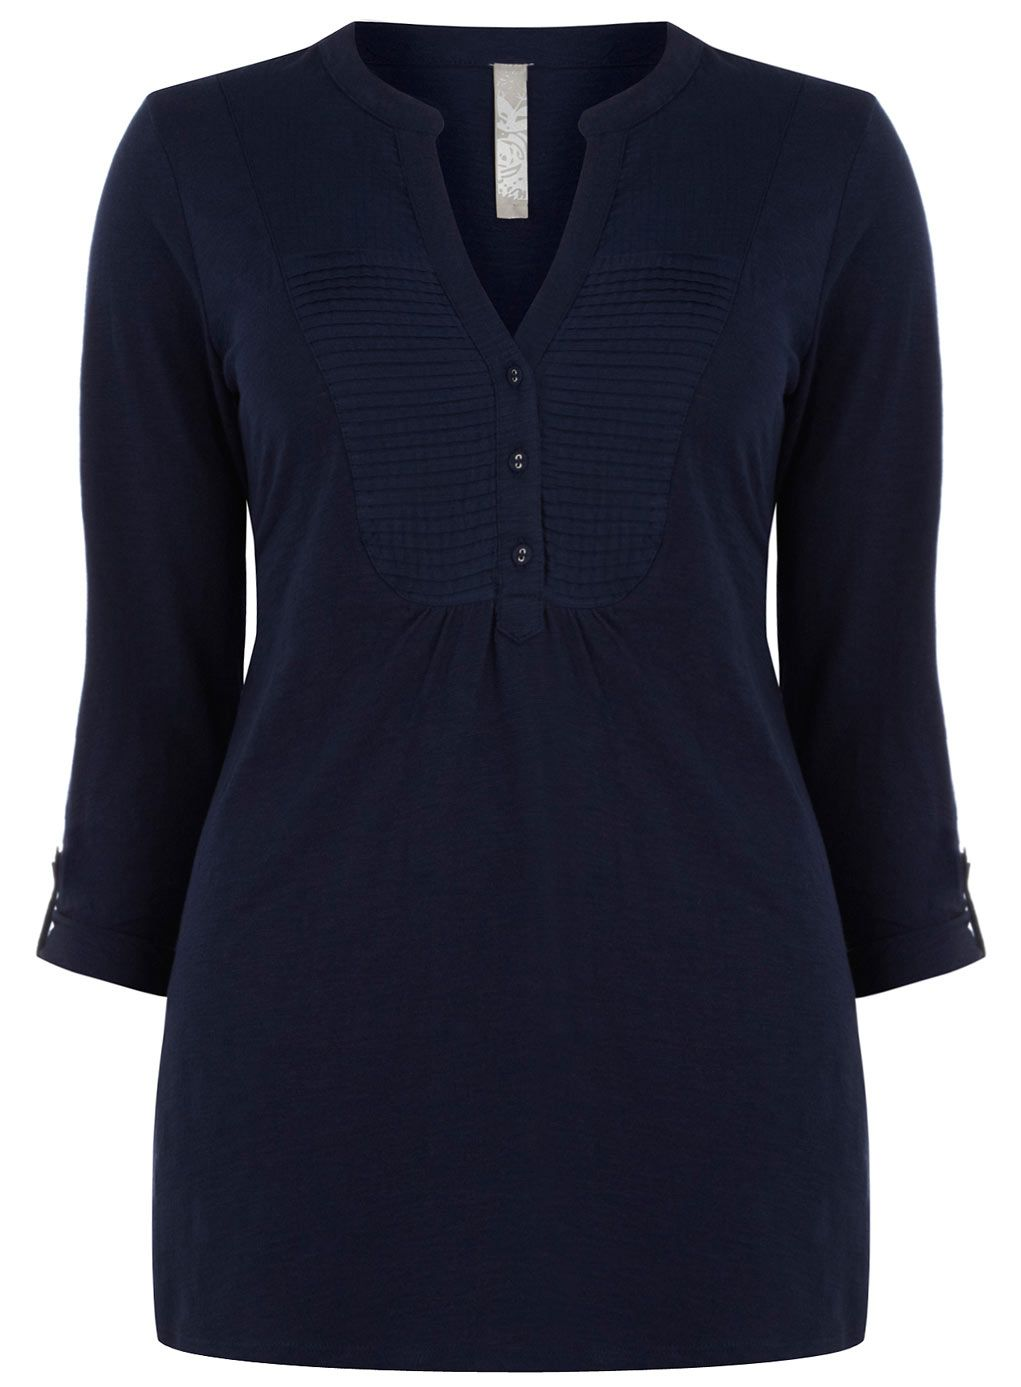 Take your look back to the basics with the Navy Woven Bib Jersey Shirt. Perfect with a fitted pencil skirt and great ballerina pumps.